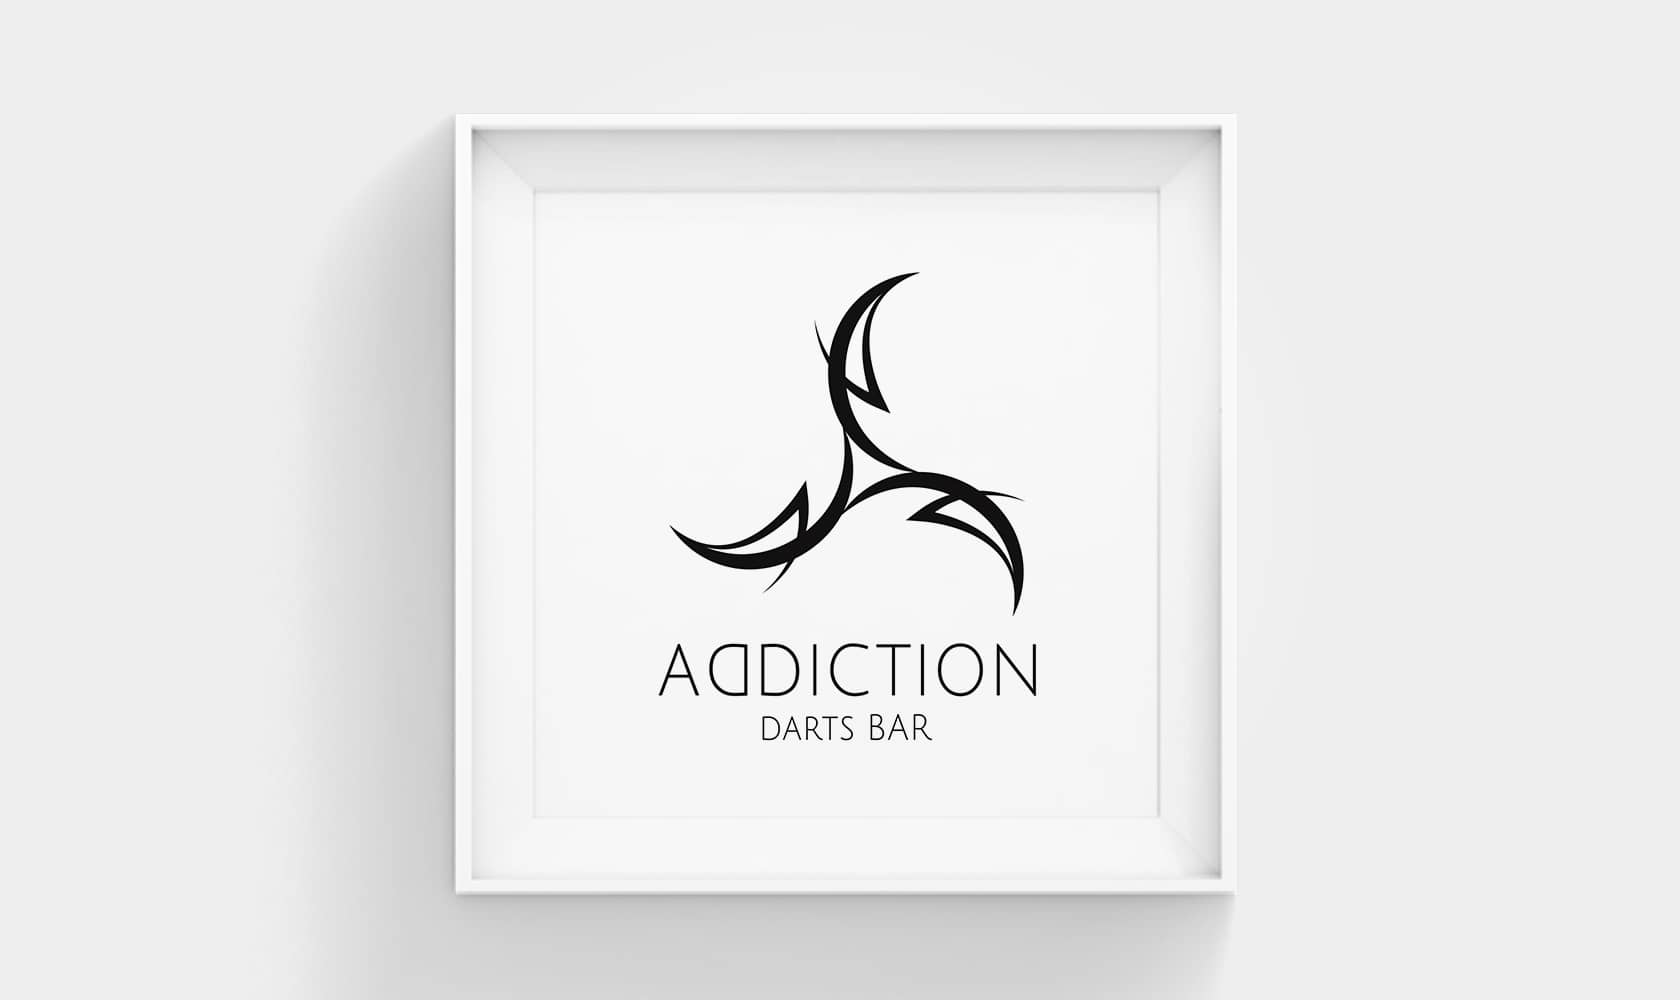 Darts Bar ADDICTION LOGO